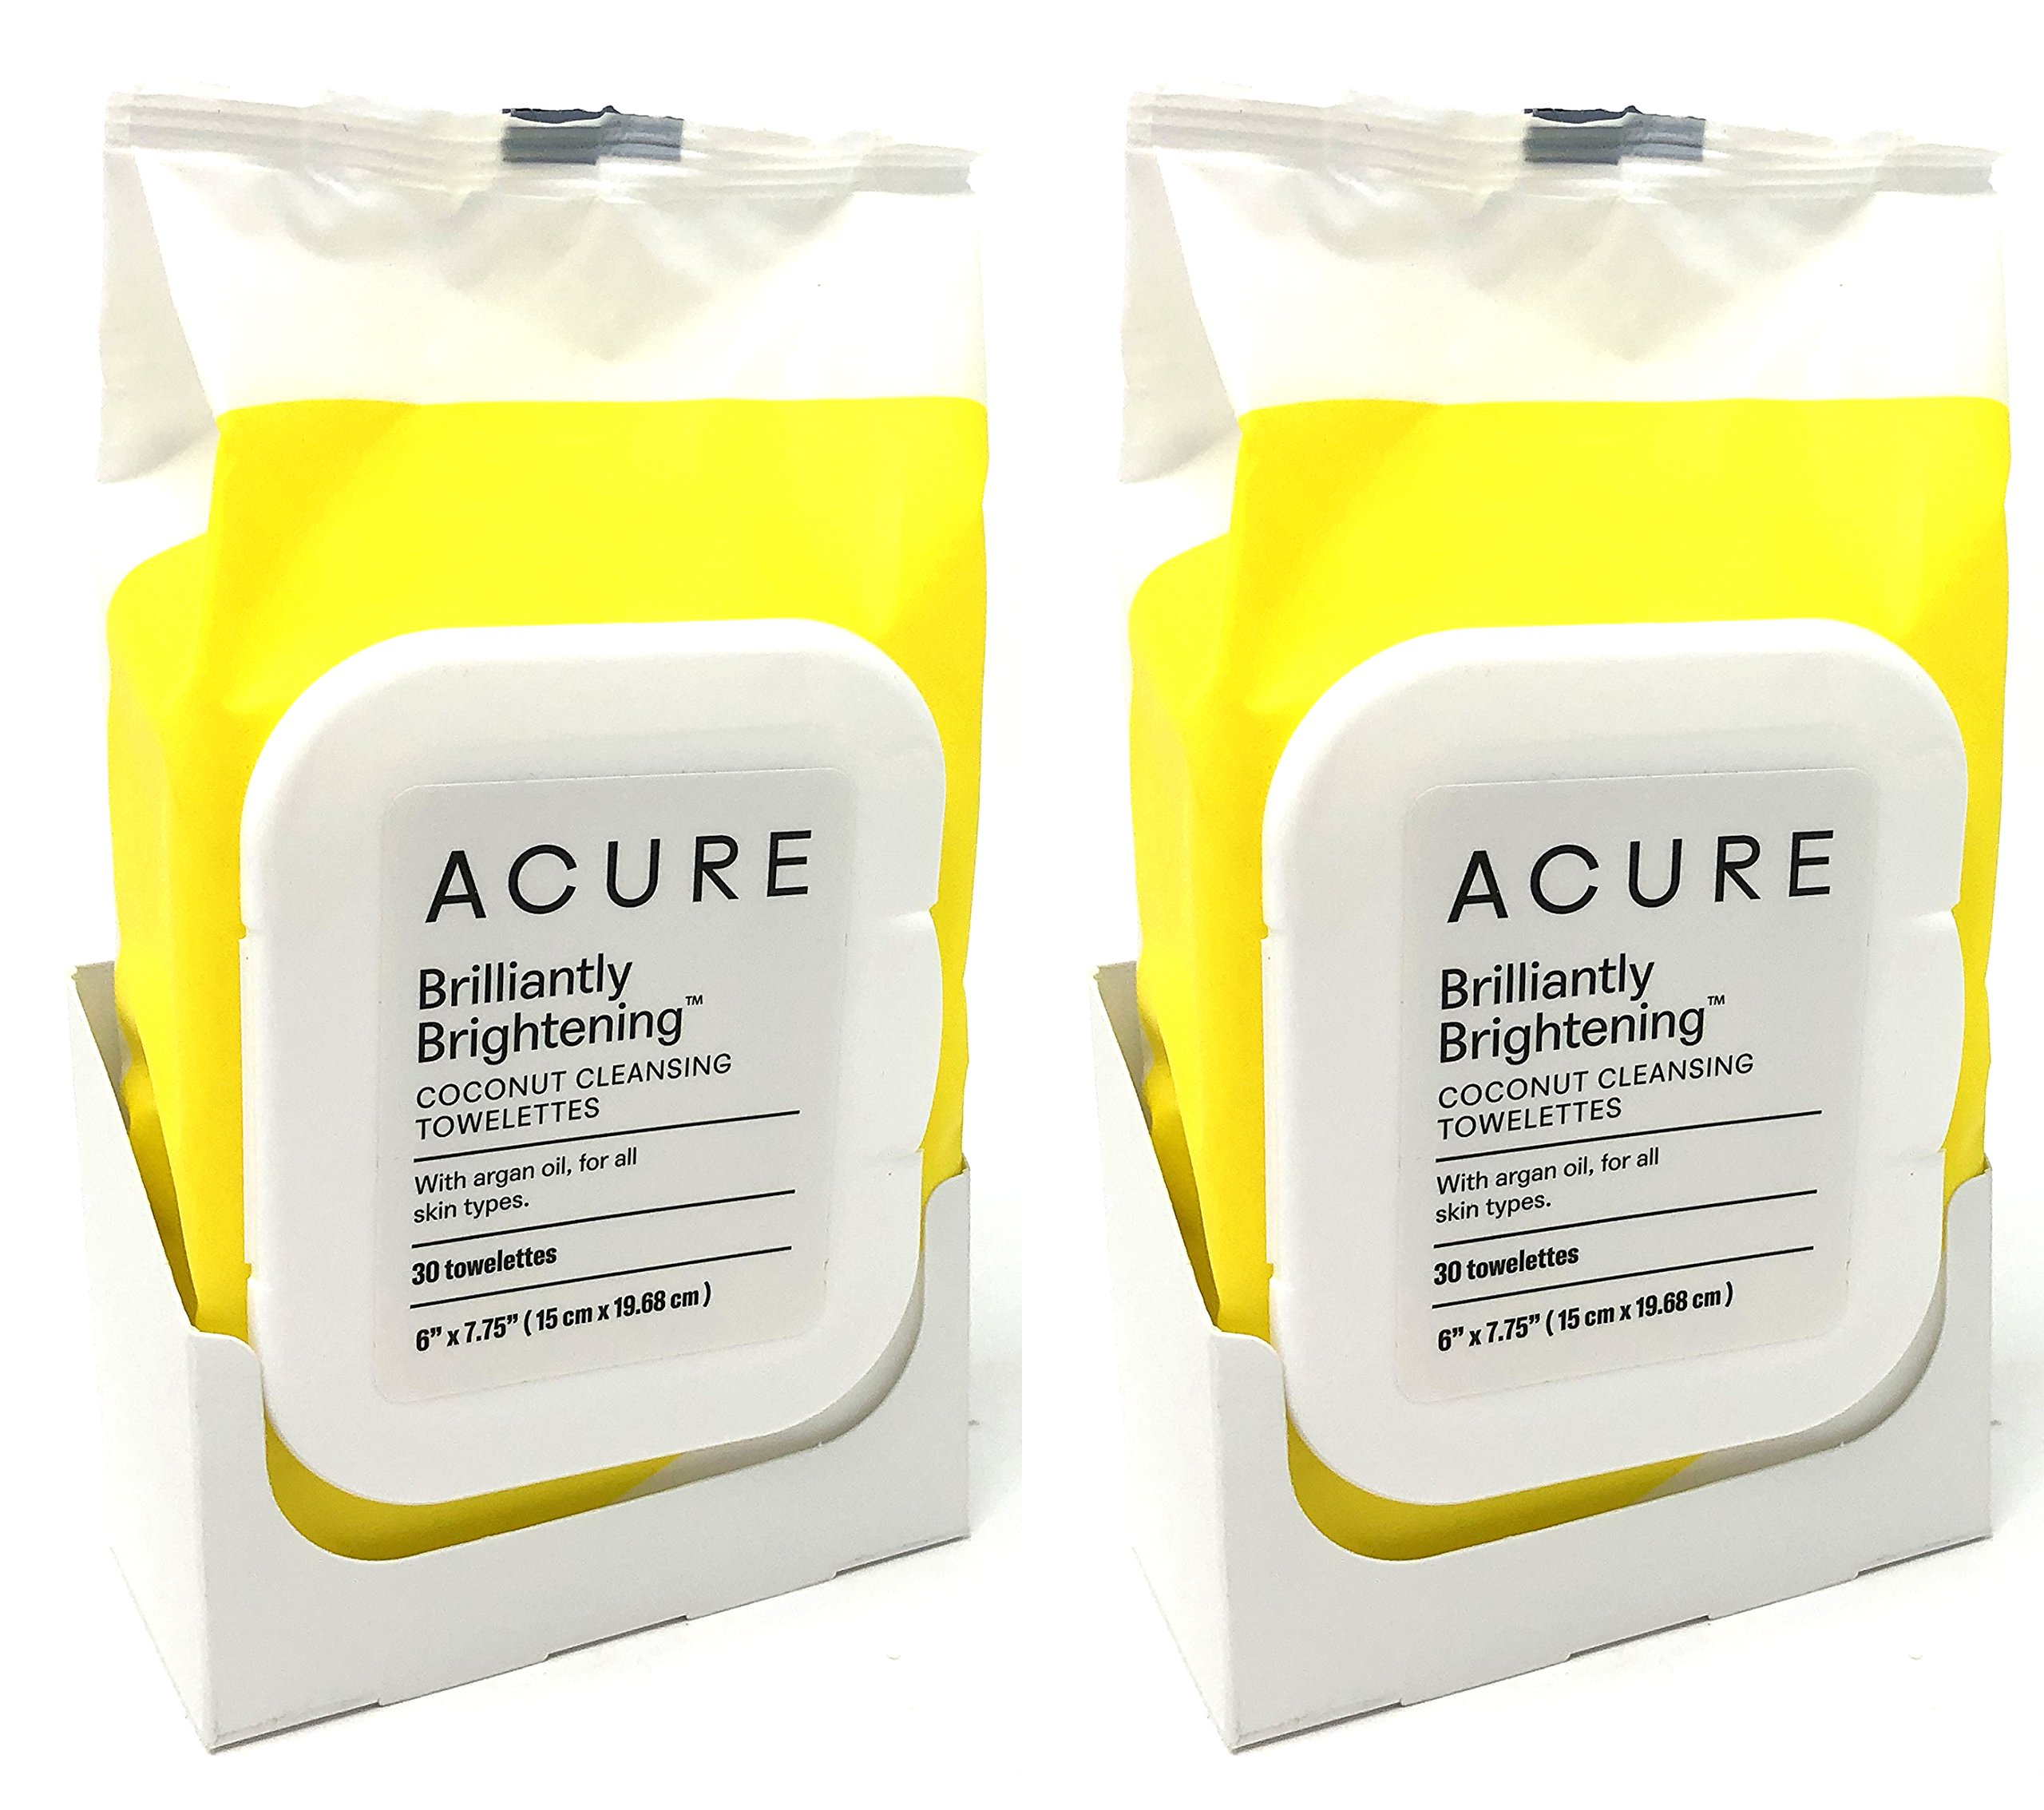 Acure - Coconut + Argan Oil Cleansing Towelettes